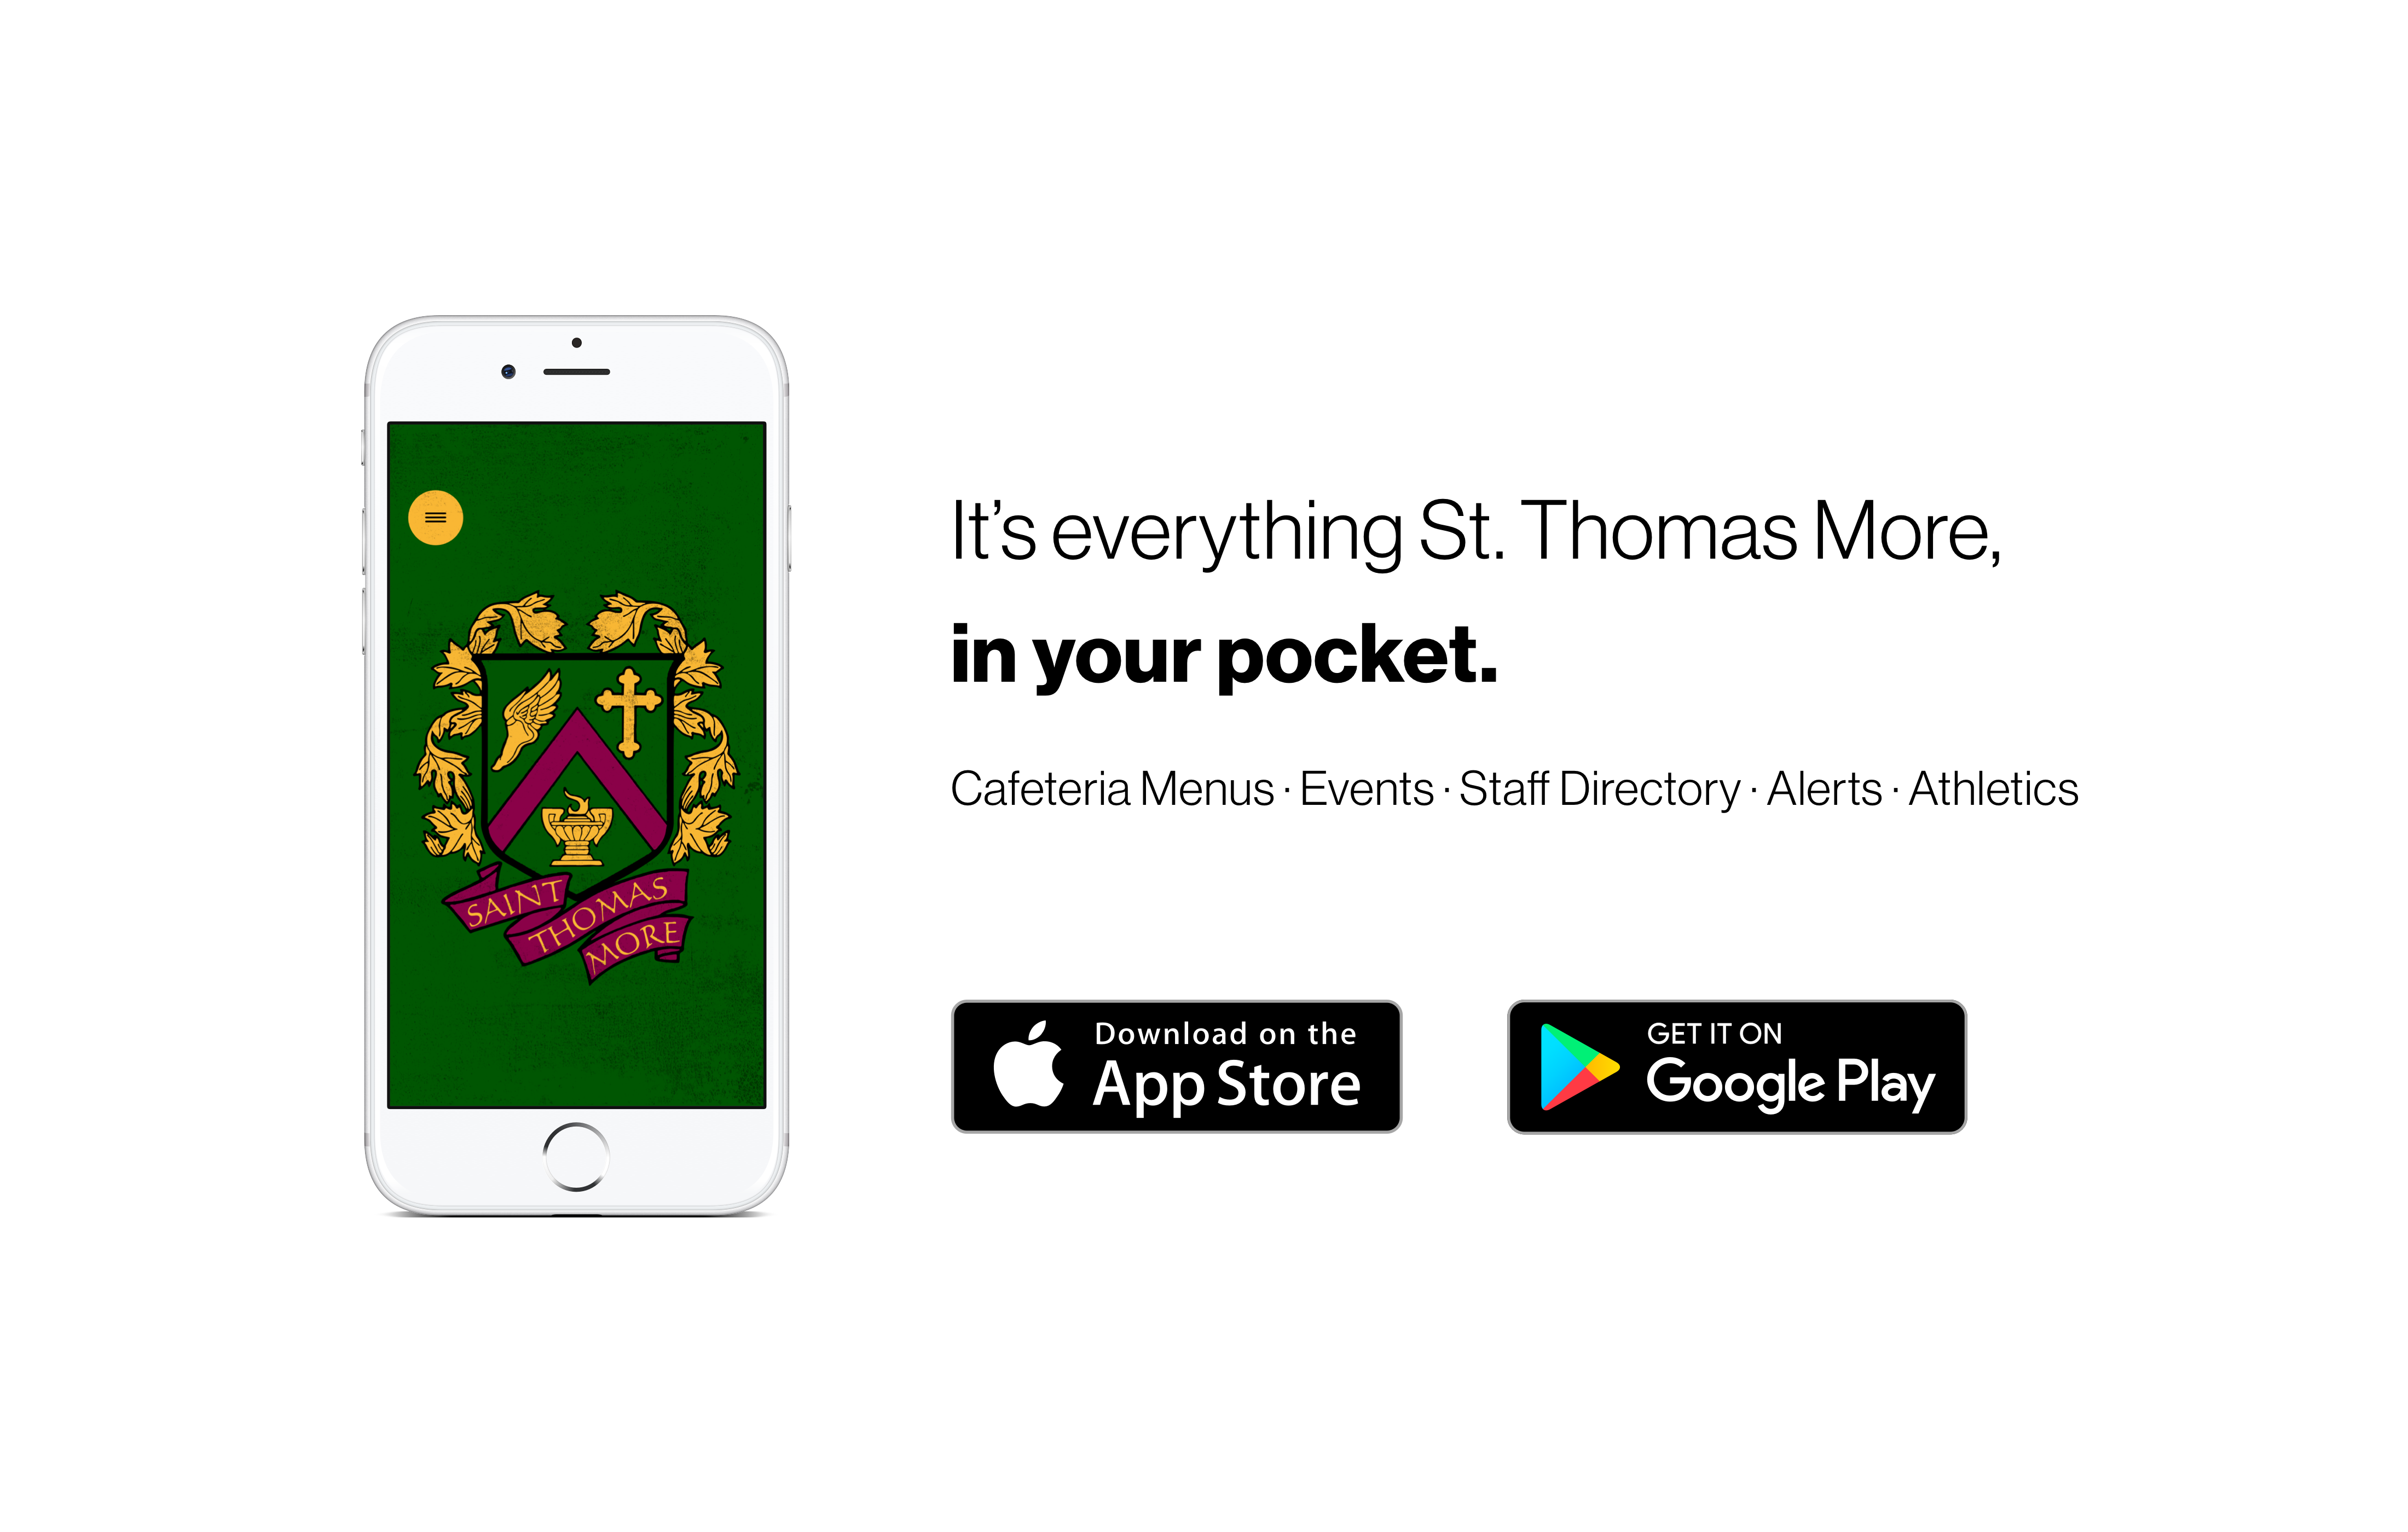 It's everything Saint Thomas More, in your pocket!